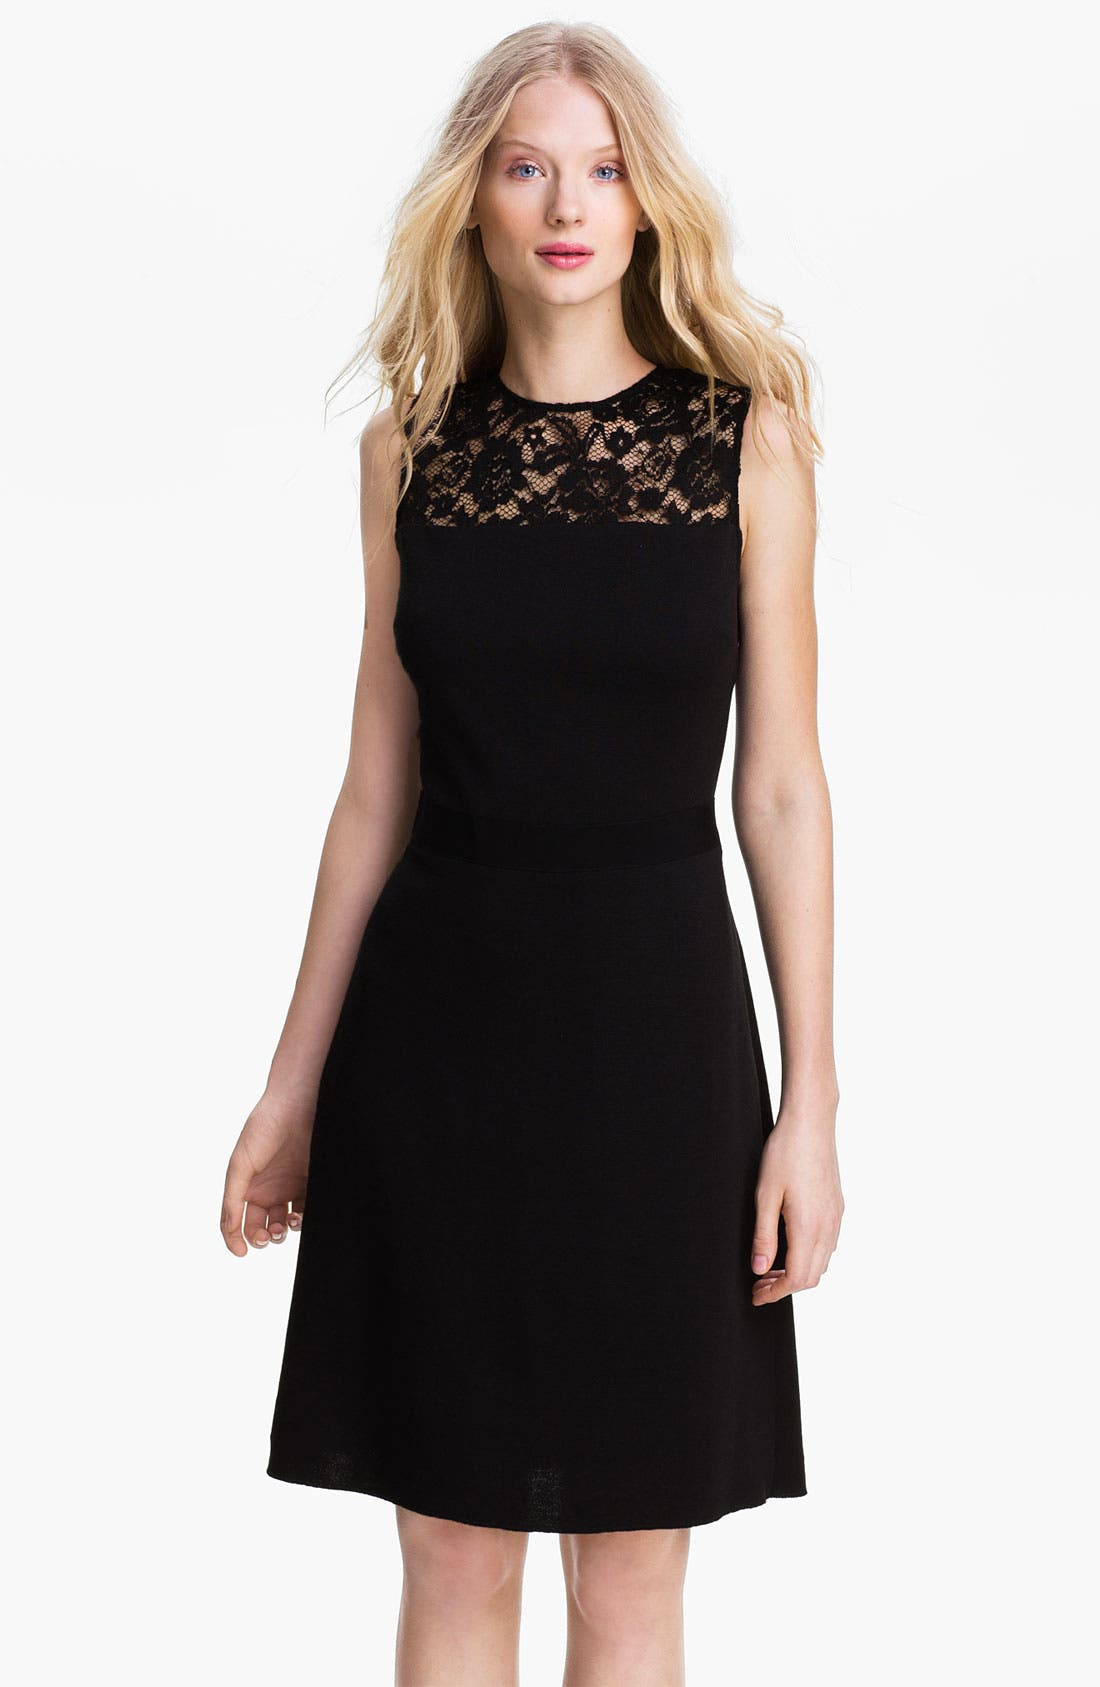 Alternate Image 1 Selected - Tory Burch 'Adrianna' Wool Blend A-Line Dress